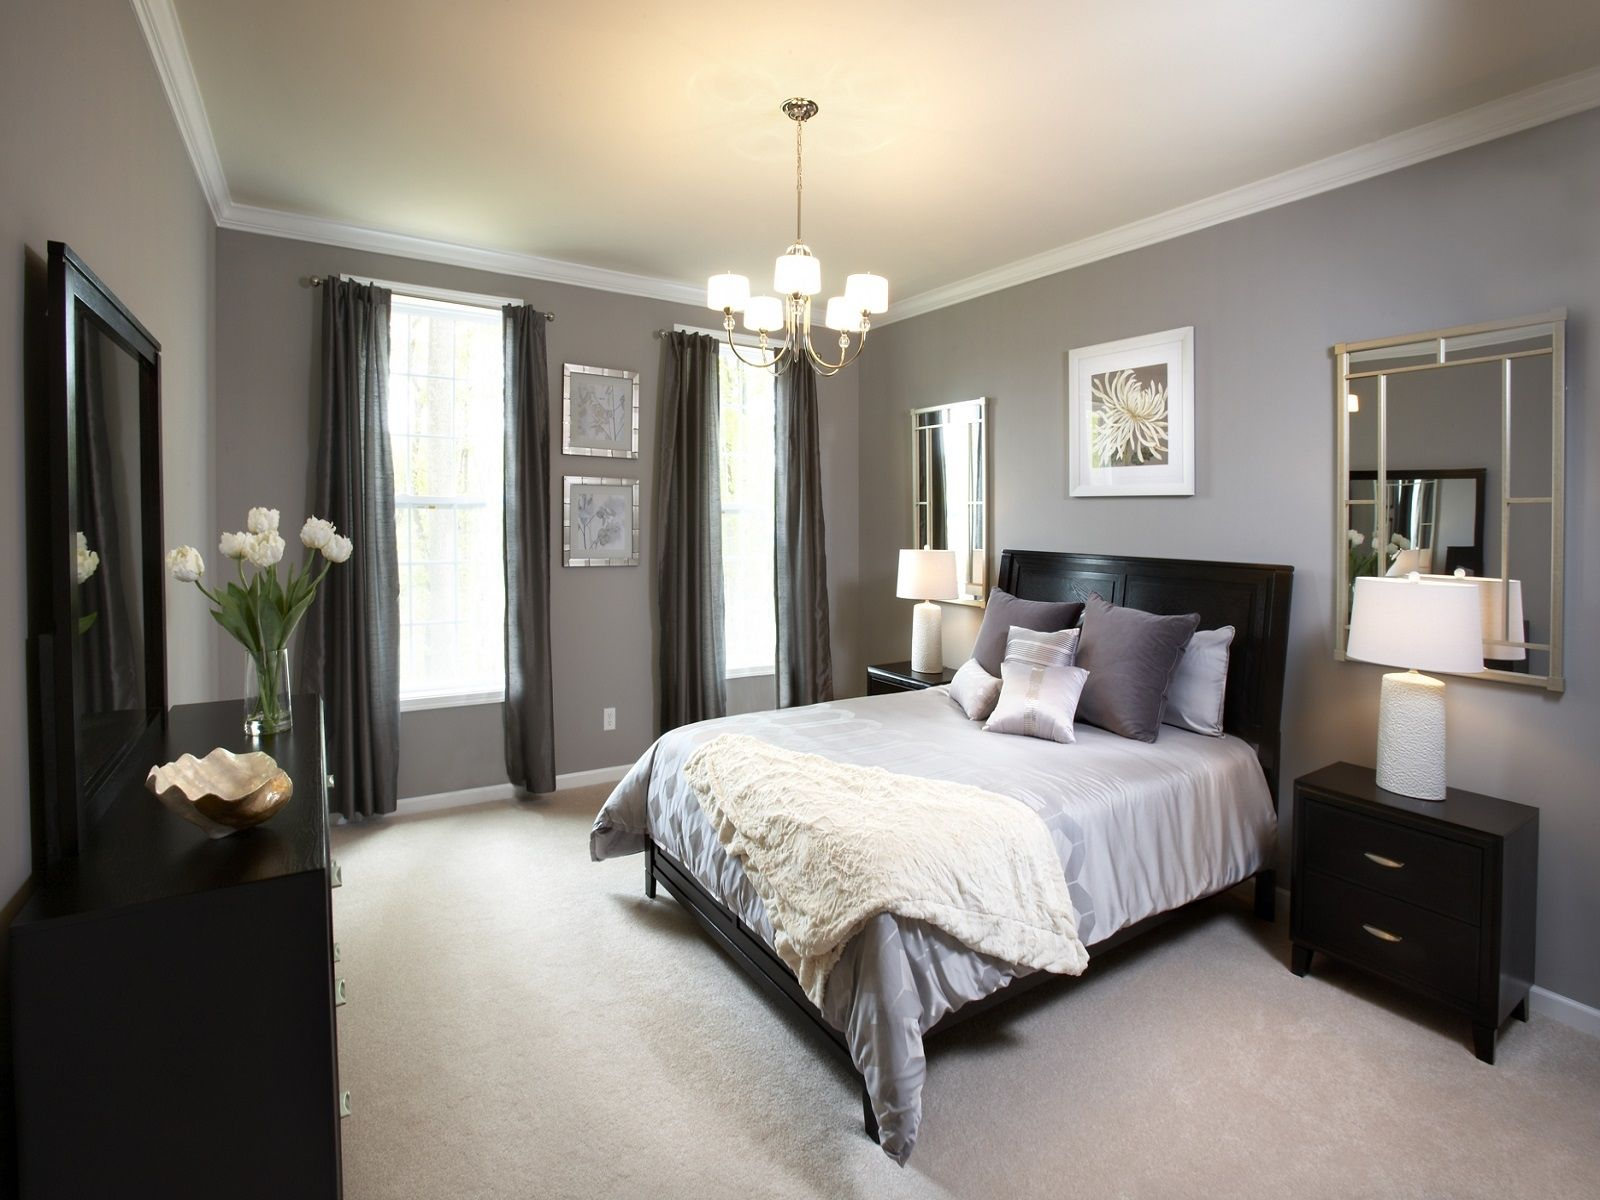 brilliant decorating bedroom ideas with black bed and dark dresser near grey painted wall - Ideas Of Bedroom Decoration